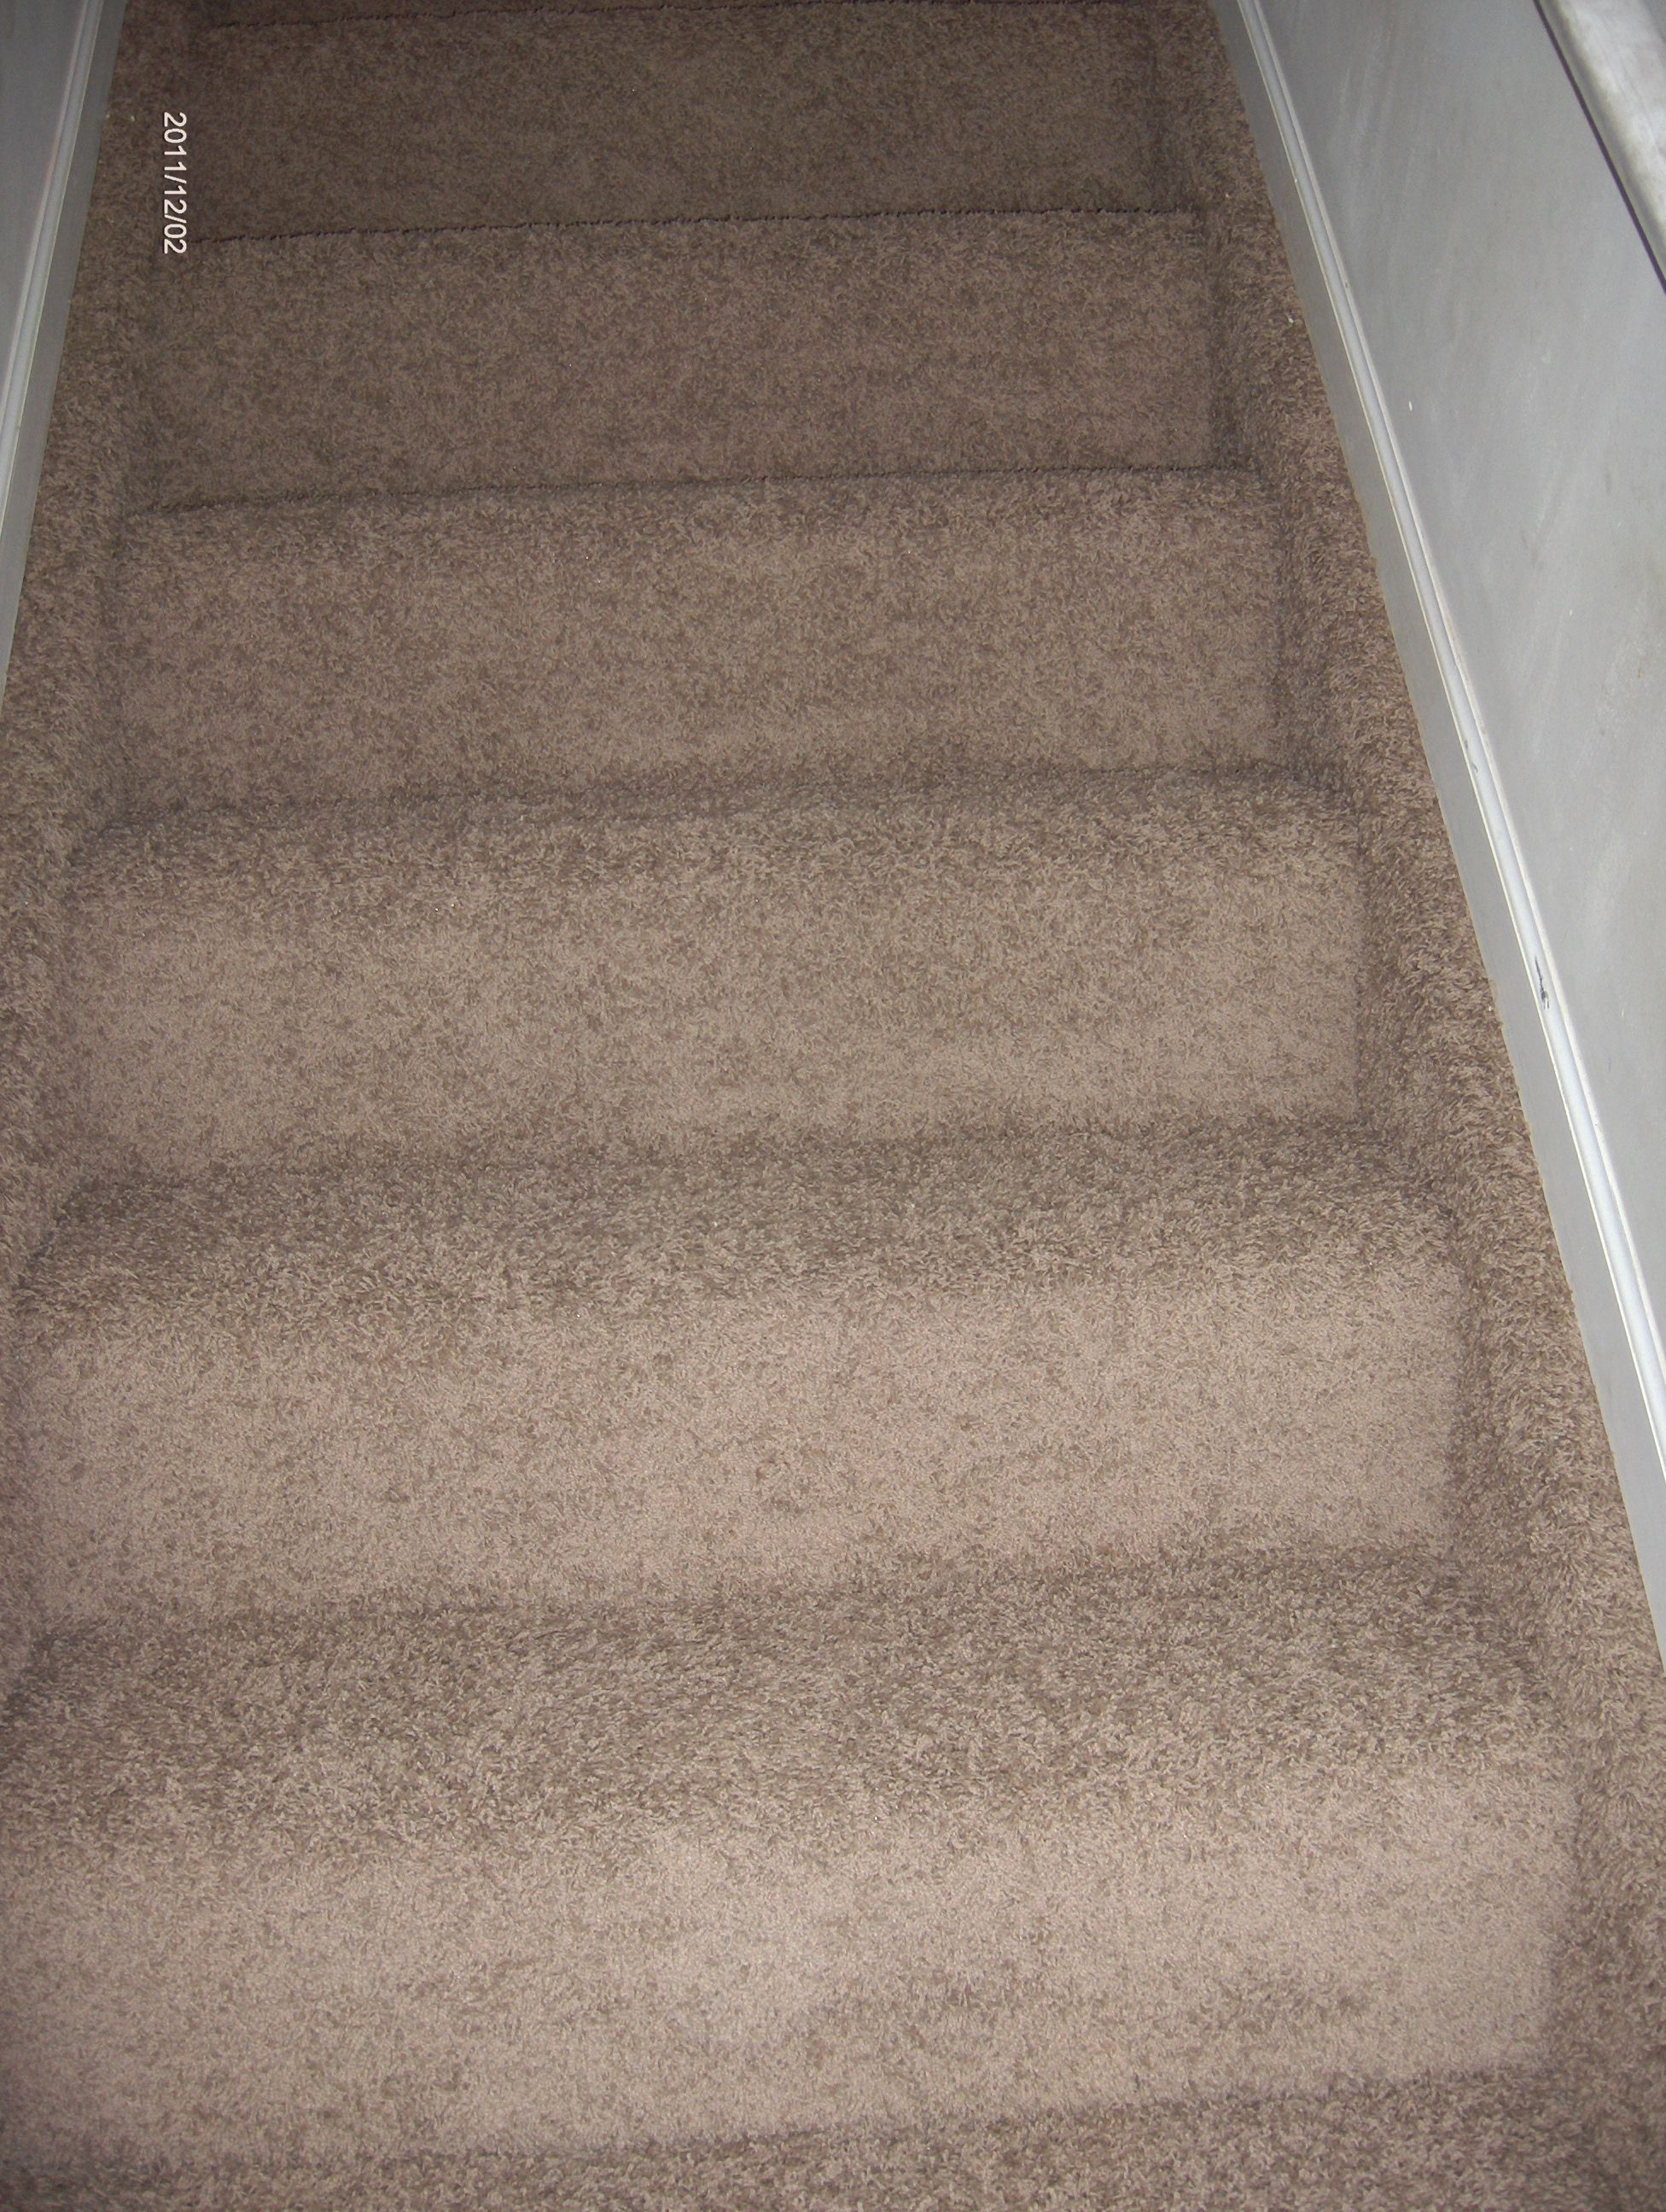 Stairway Carpet With Mohawk Including Steps And Stringers